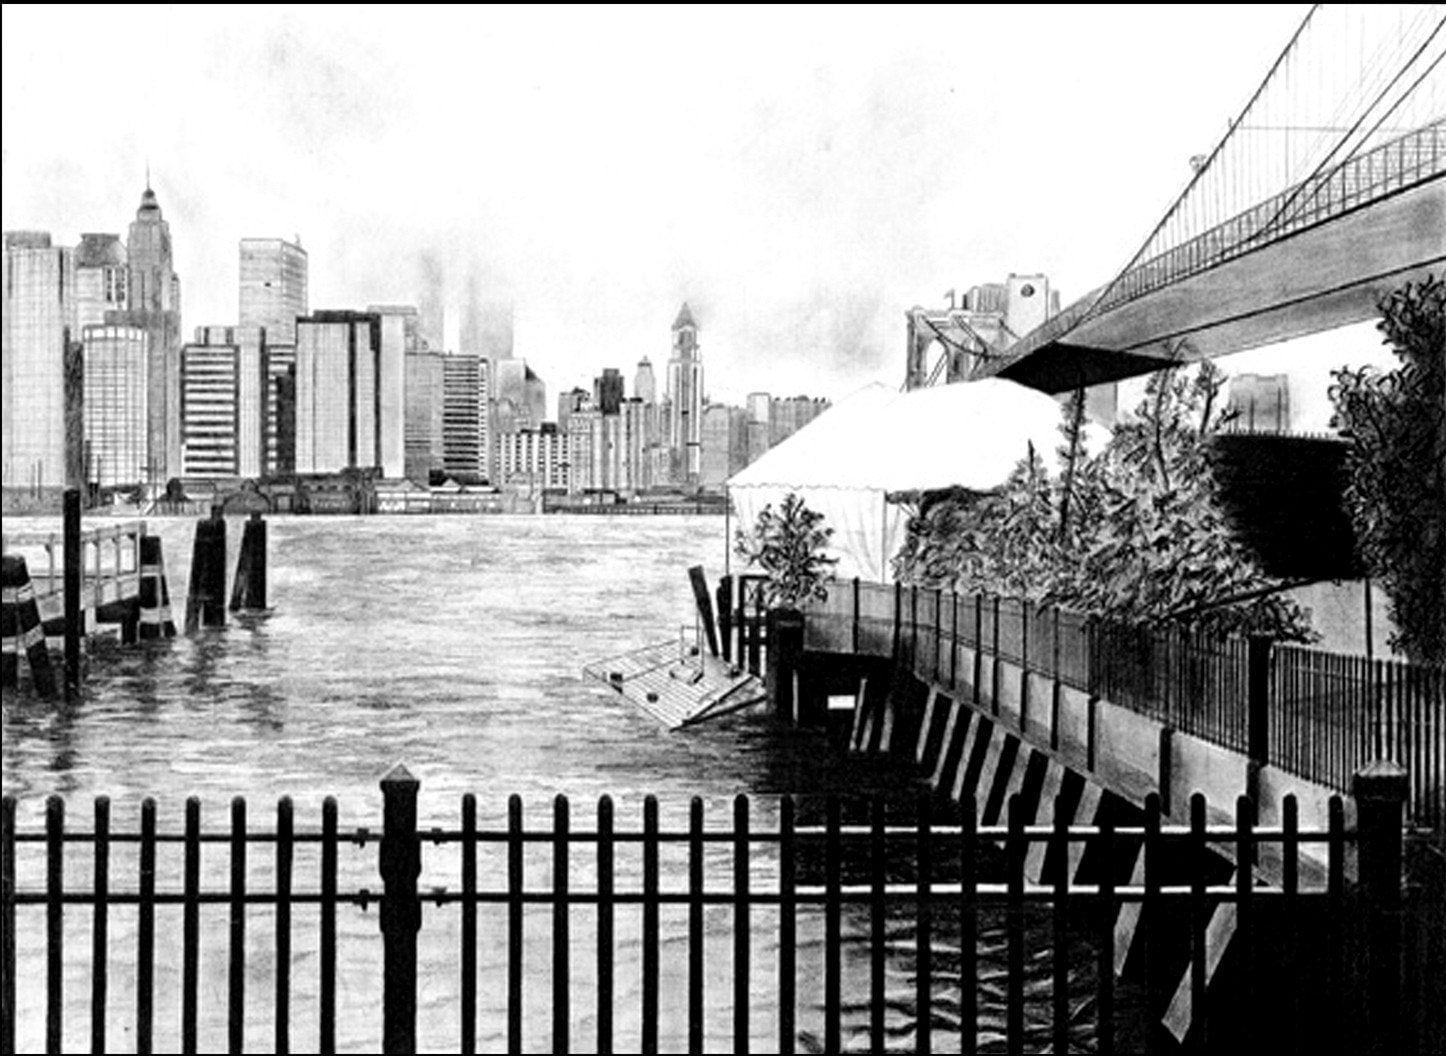 city skyline drawing. New York City Skyline pencil drawing - Matte Print 12x12